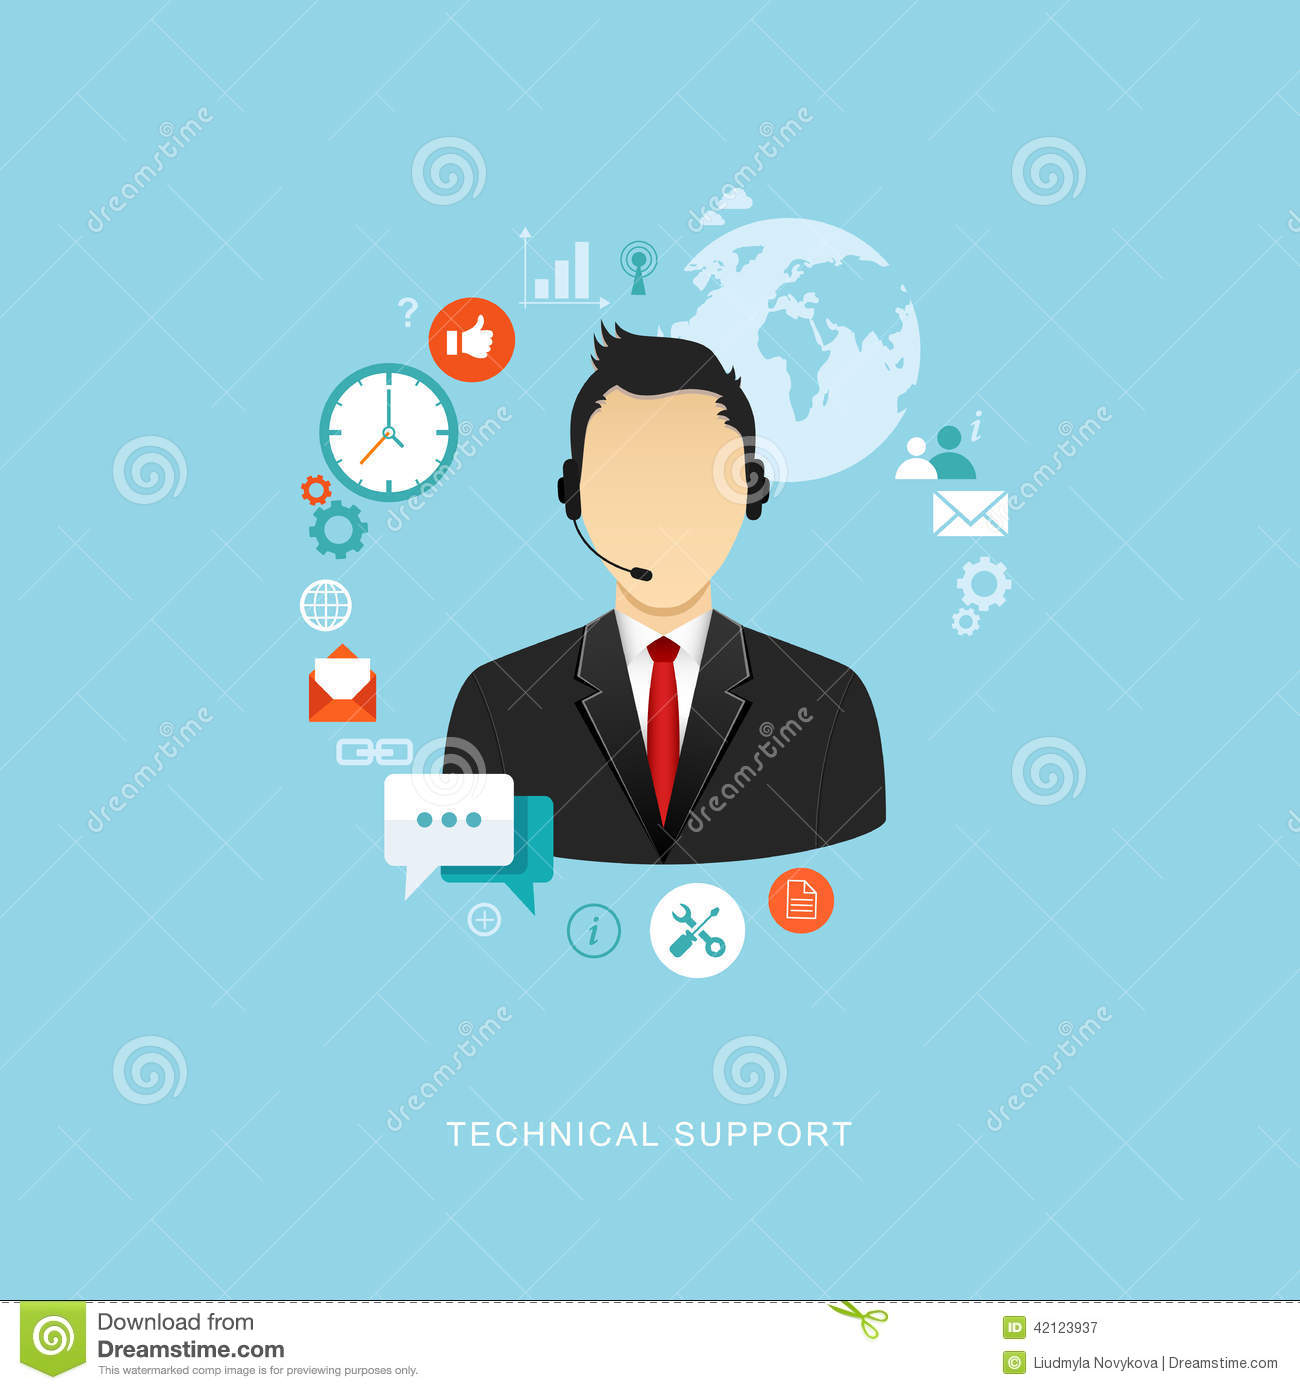 Flat Design Illustration With Icons  Technical Support